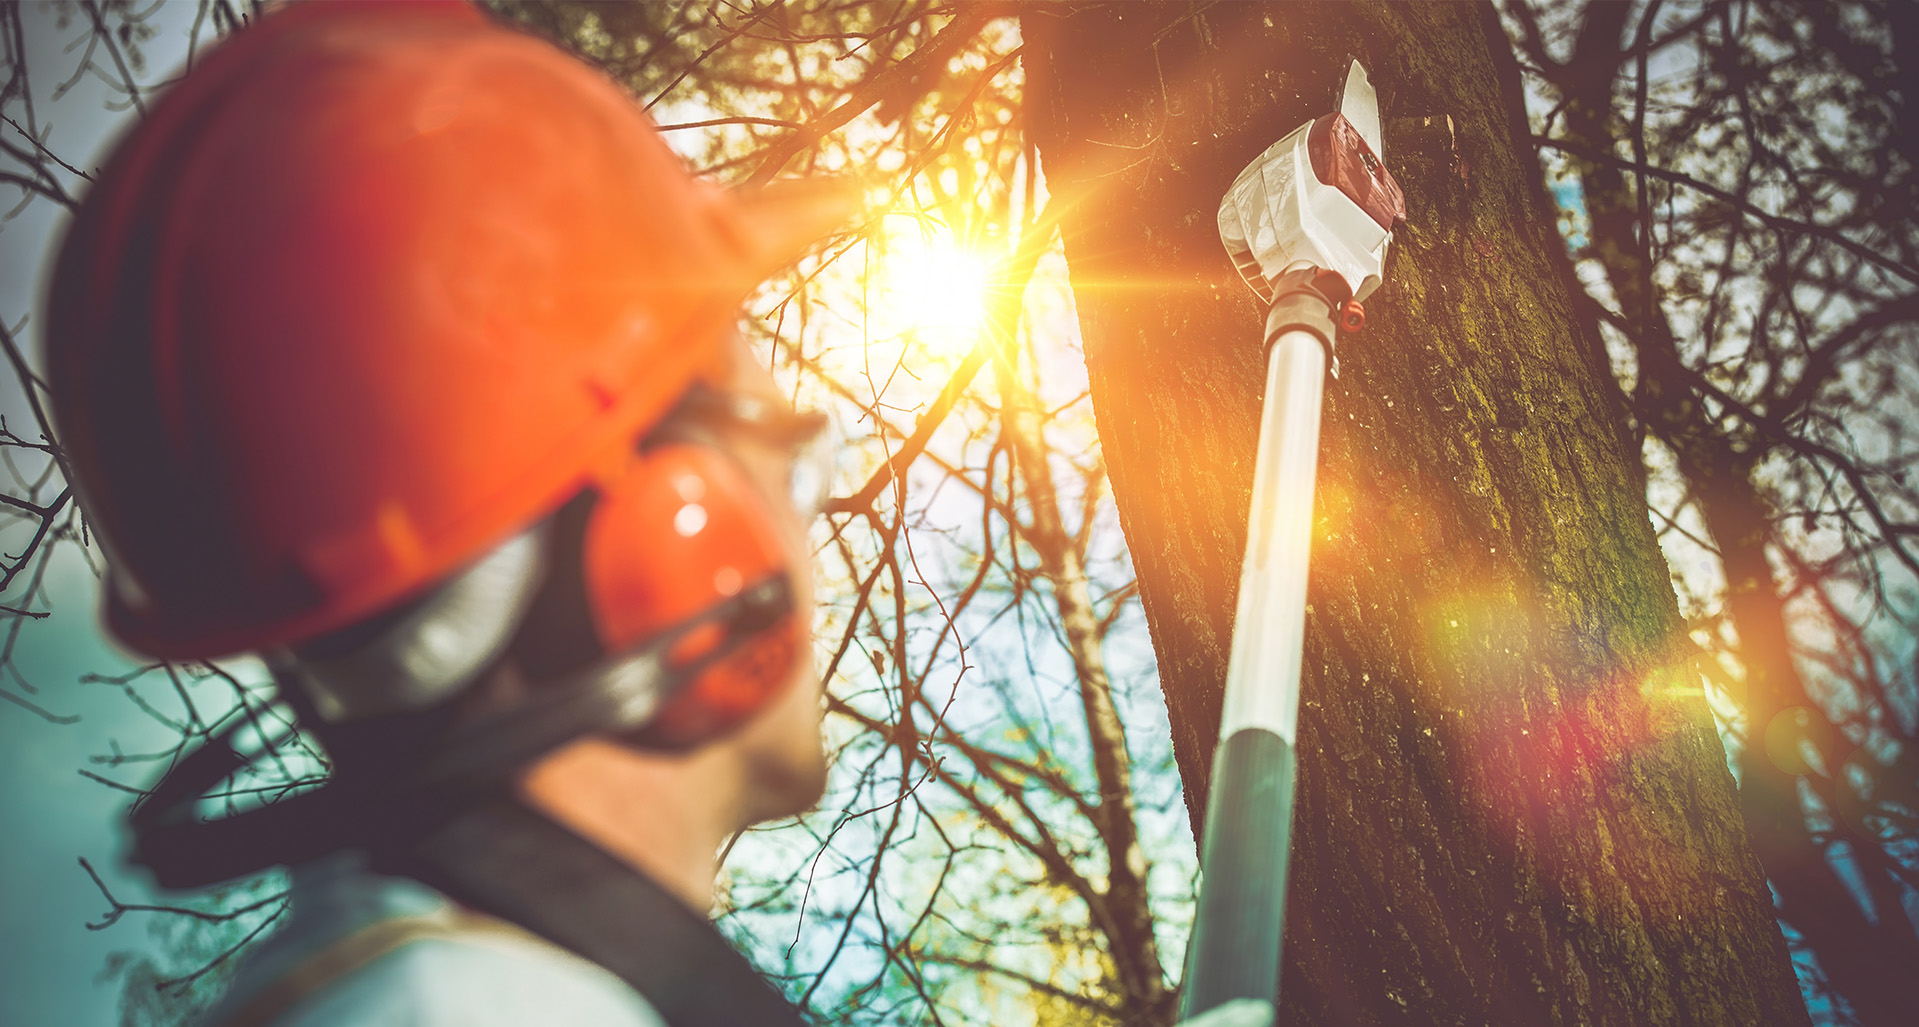 Tree Removal, Tree Trimming, Tree Service